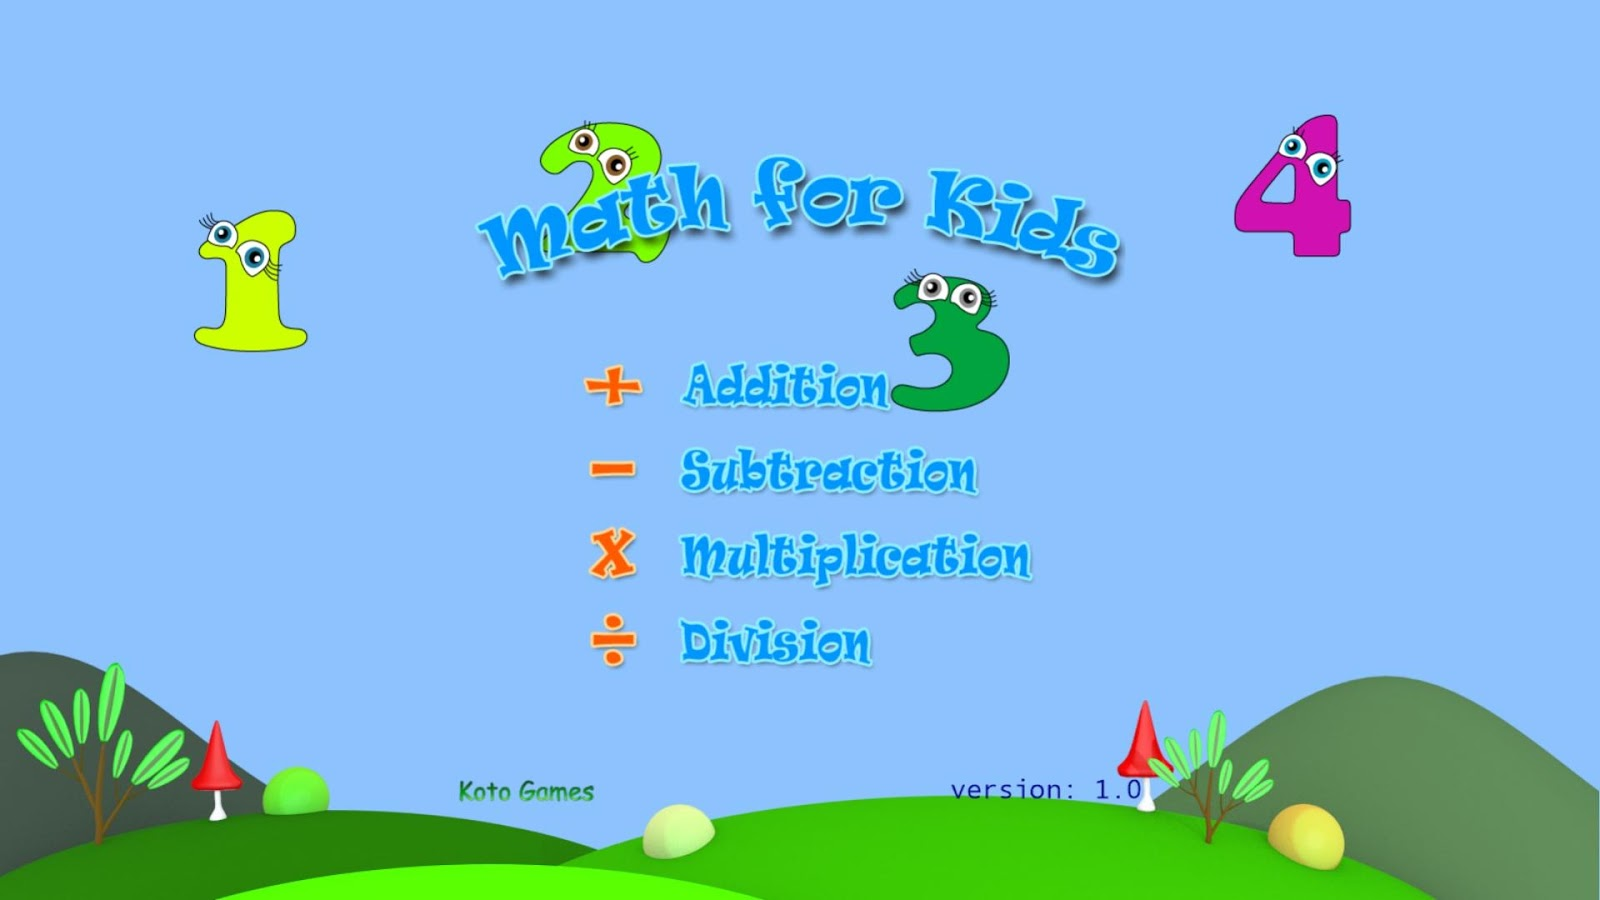 Math for Kids - calculate fast - Android Apps on Google Play